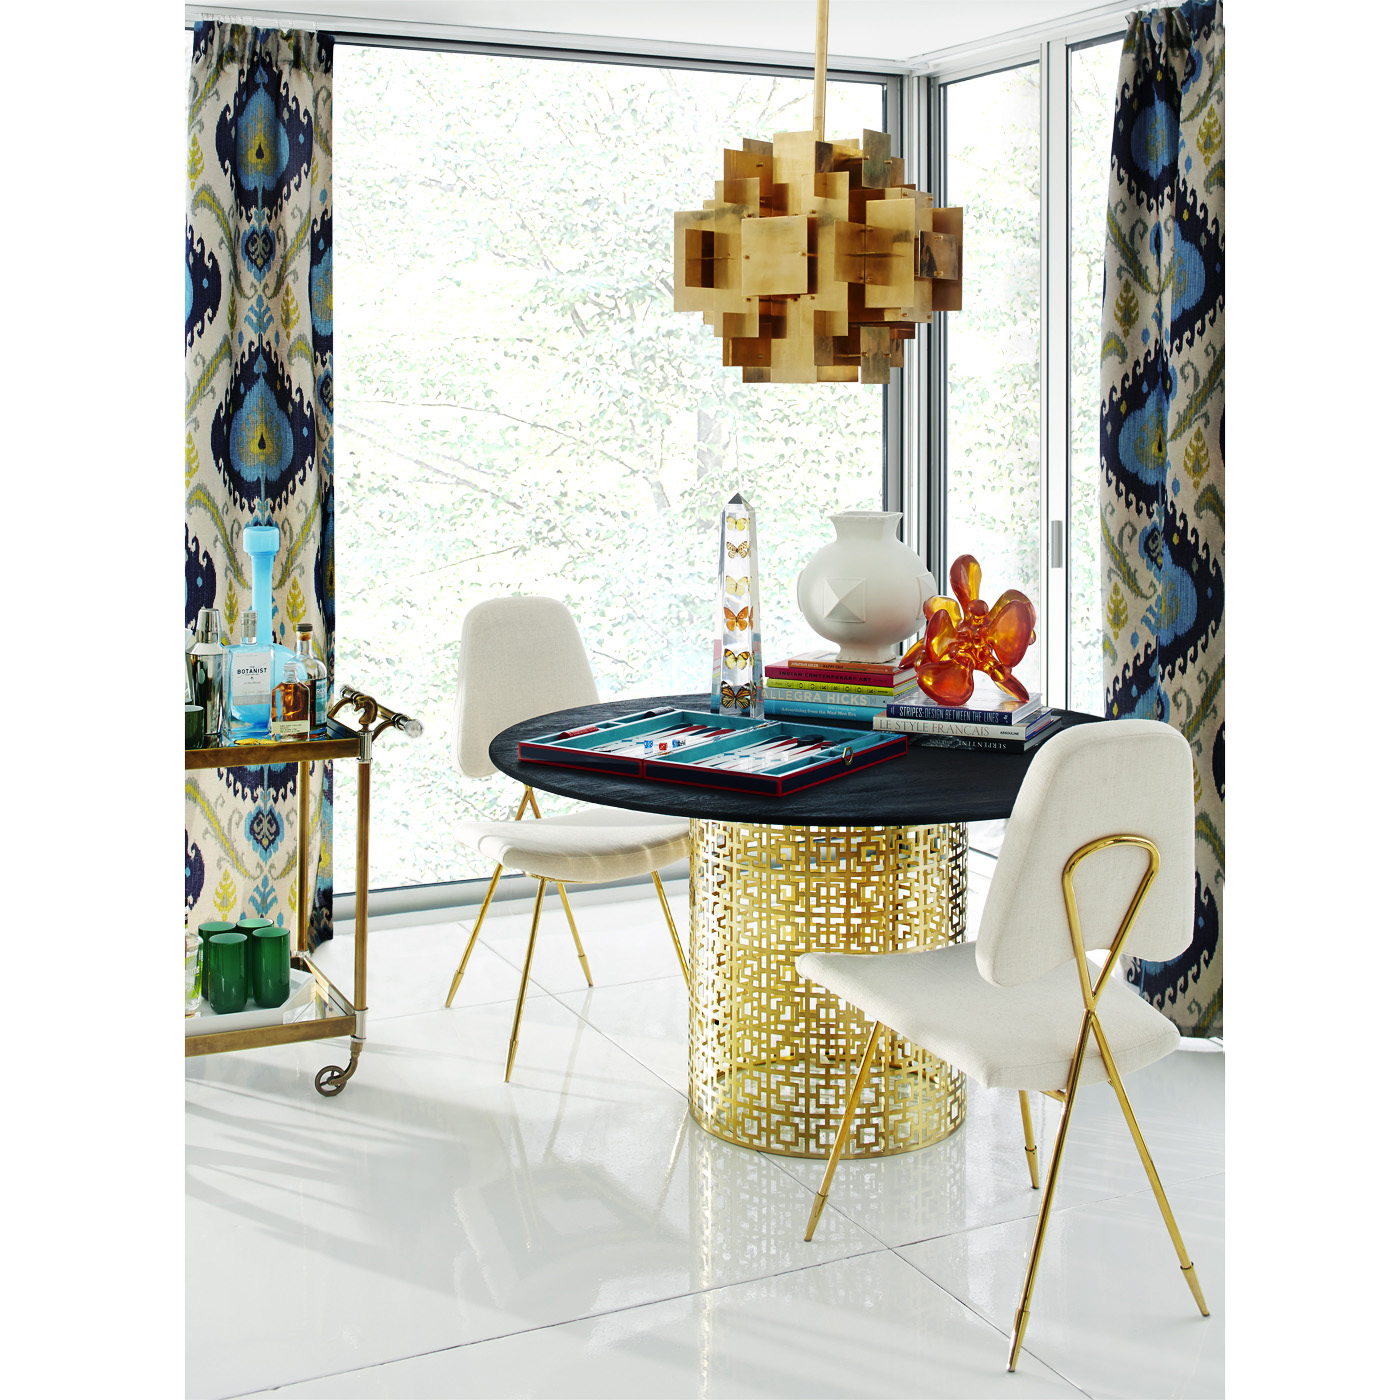 Interior design services or online e design please visit my website - Jonathan Adler Spring 2014 Stellar Interior Design